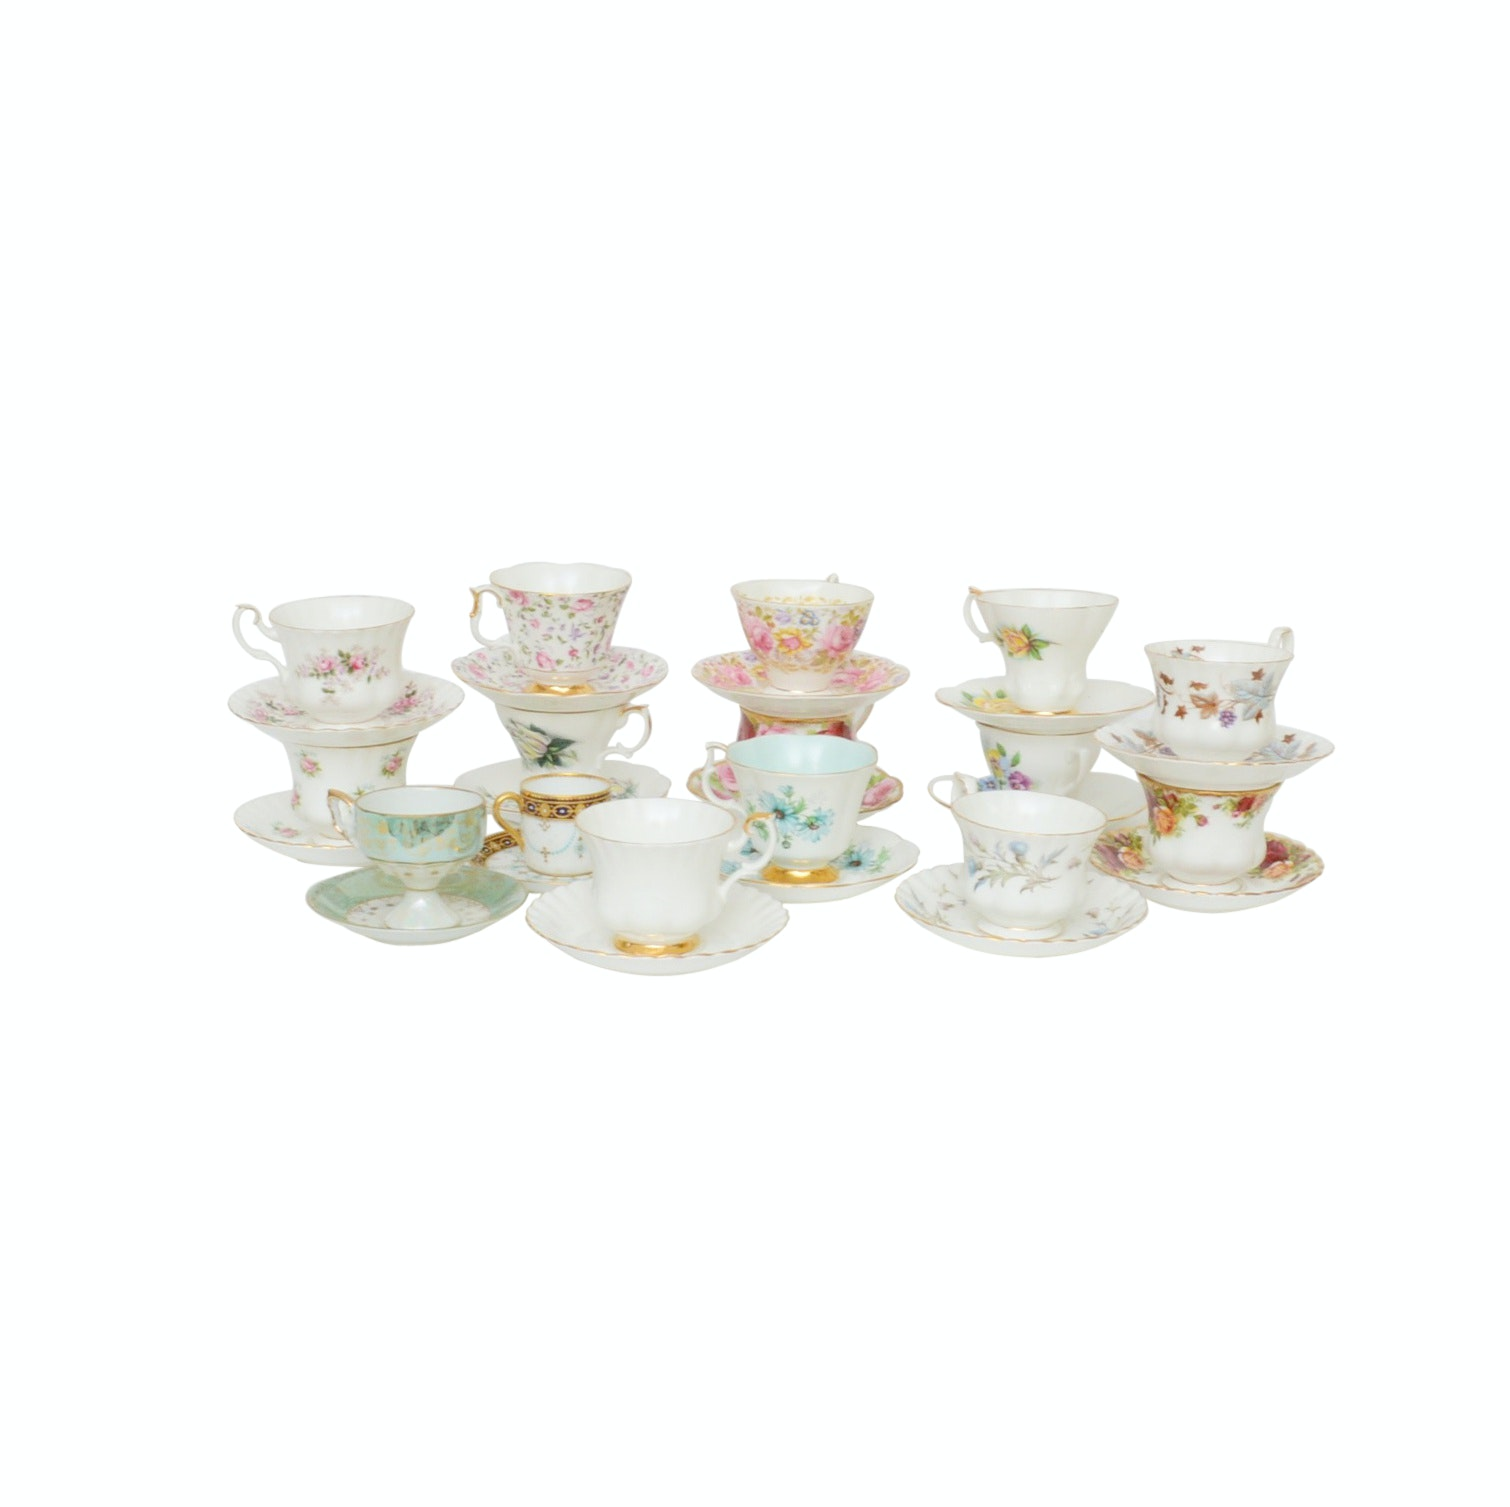 "Mixed Fine China Teacups and Saucers Including Copeland's ""Jewelled Porcelain"""